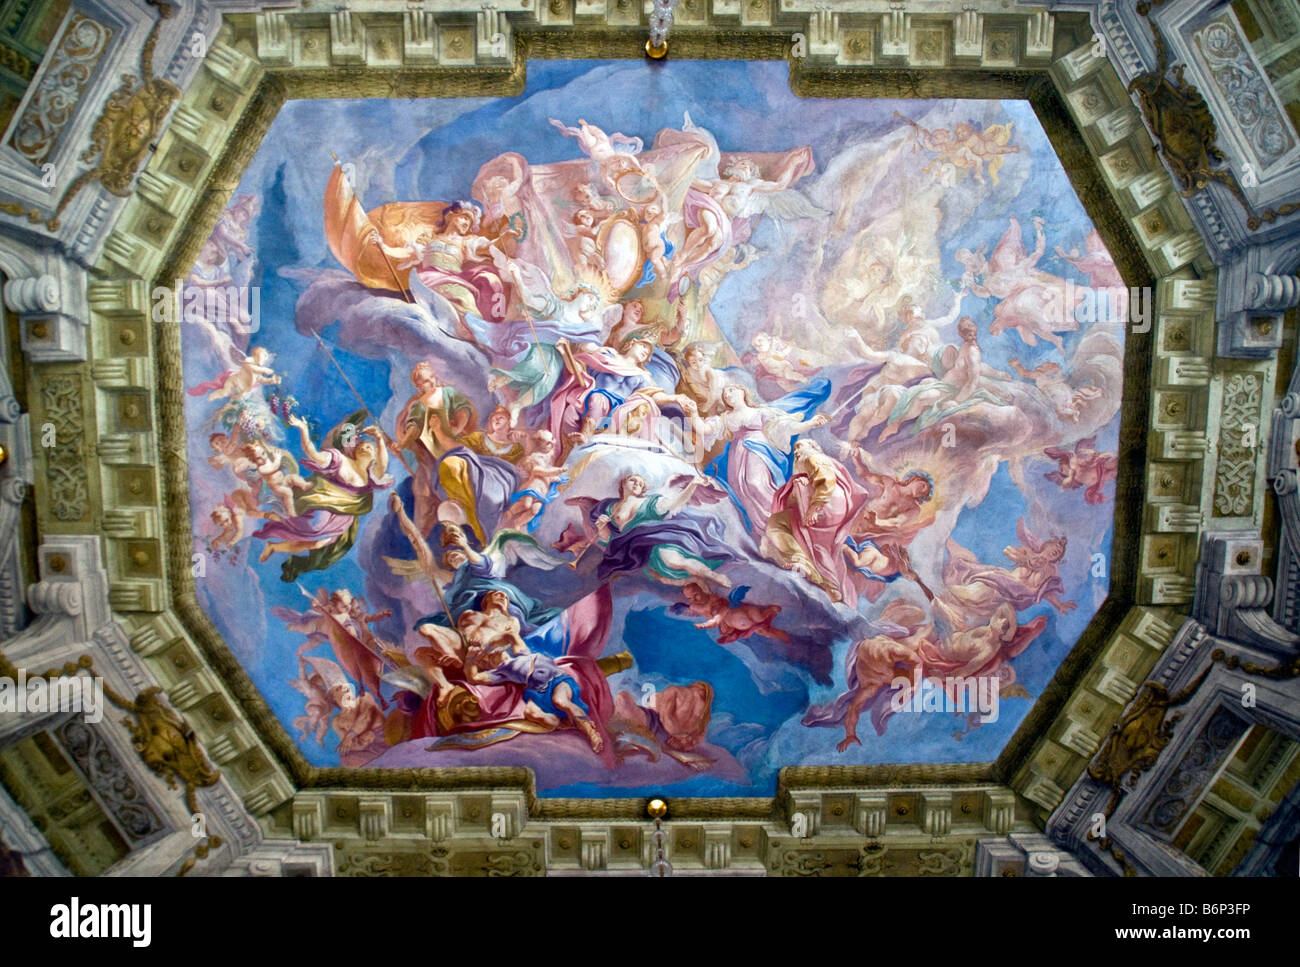 Good Viennau0027s Belvedere Palace Marble Room Ceiling Mural, Baroque Architecture,  Built By Prince Eugene Of Savoy